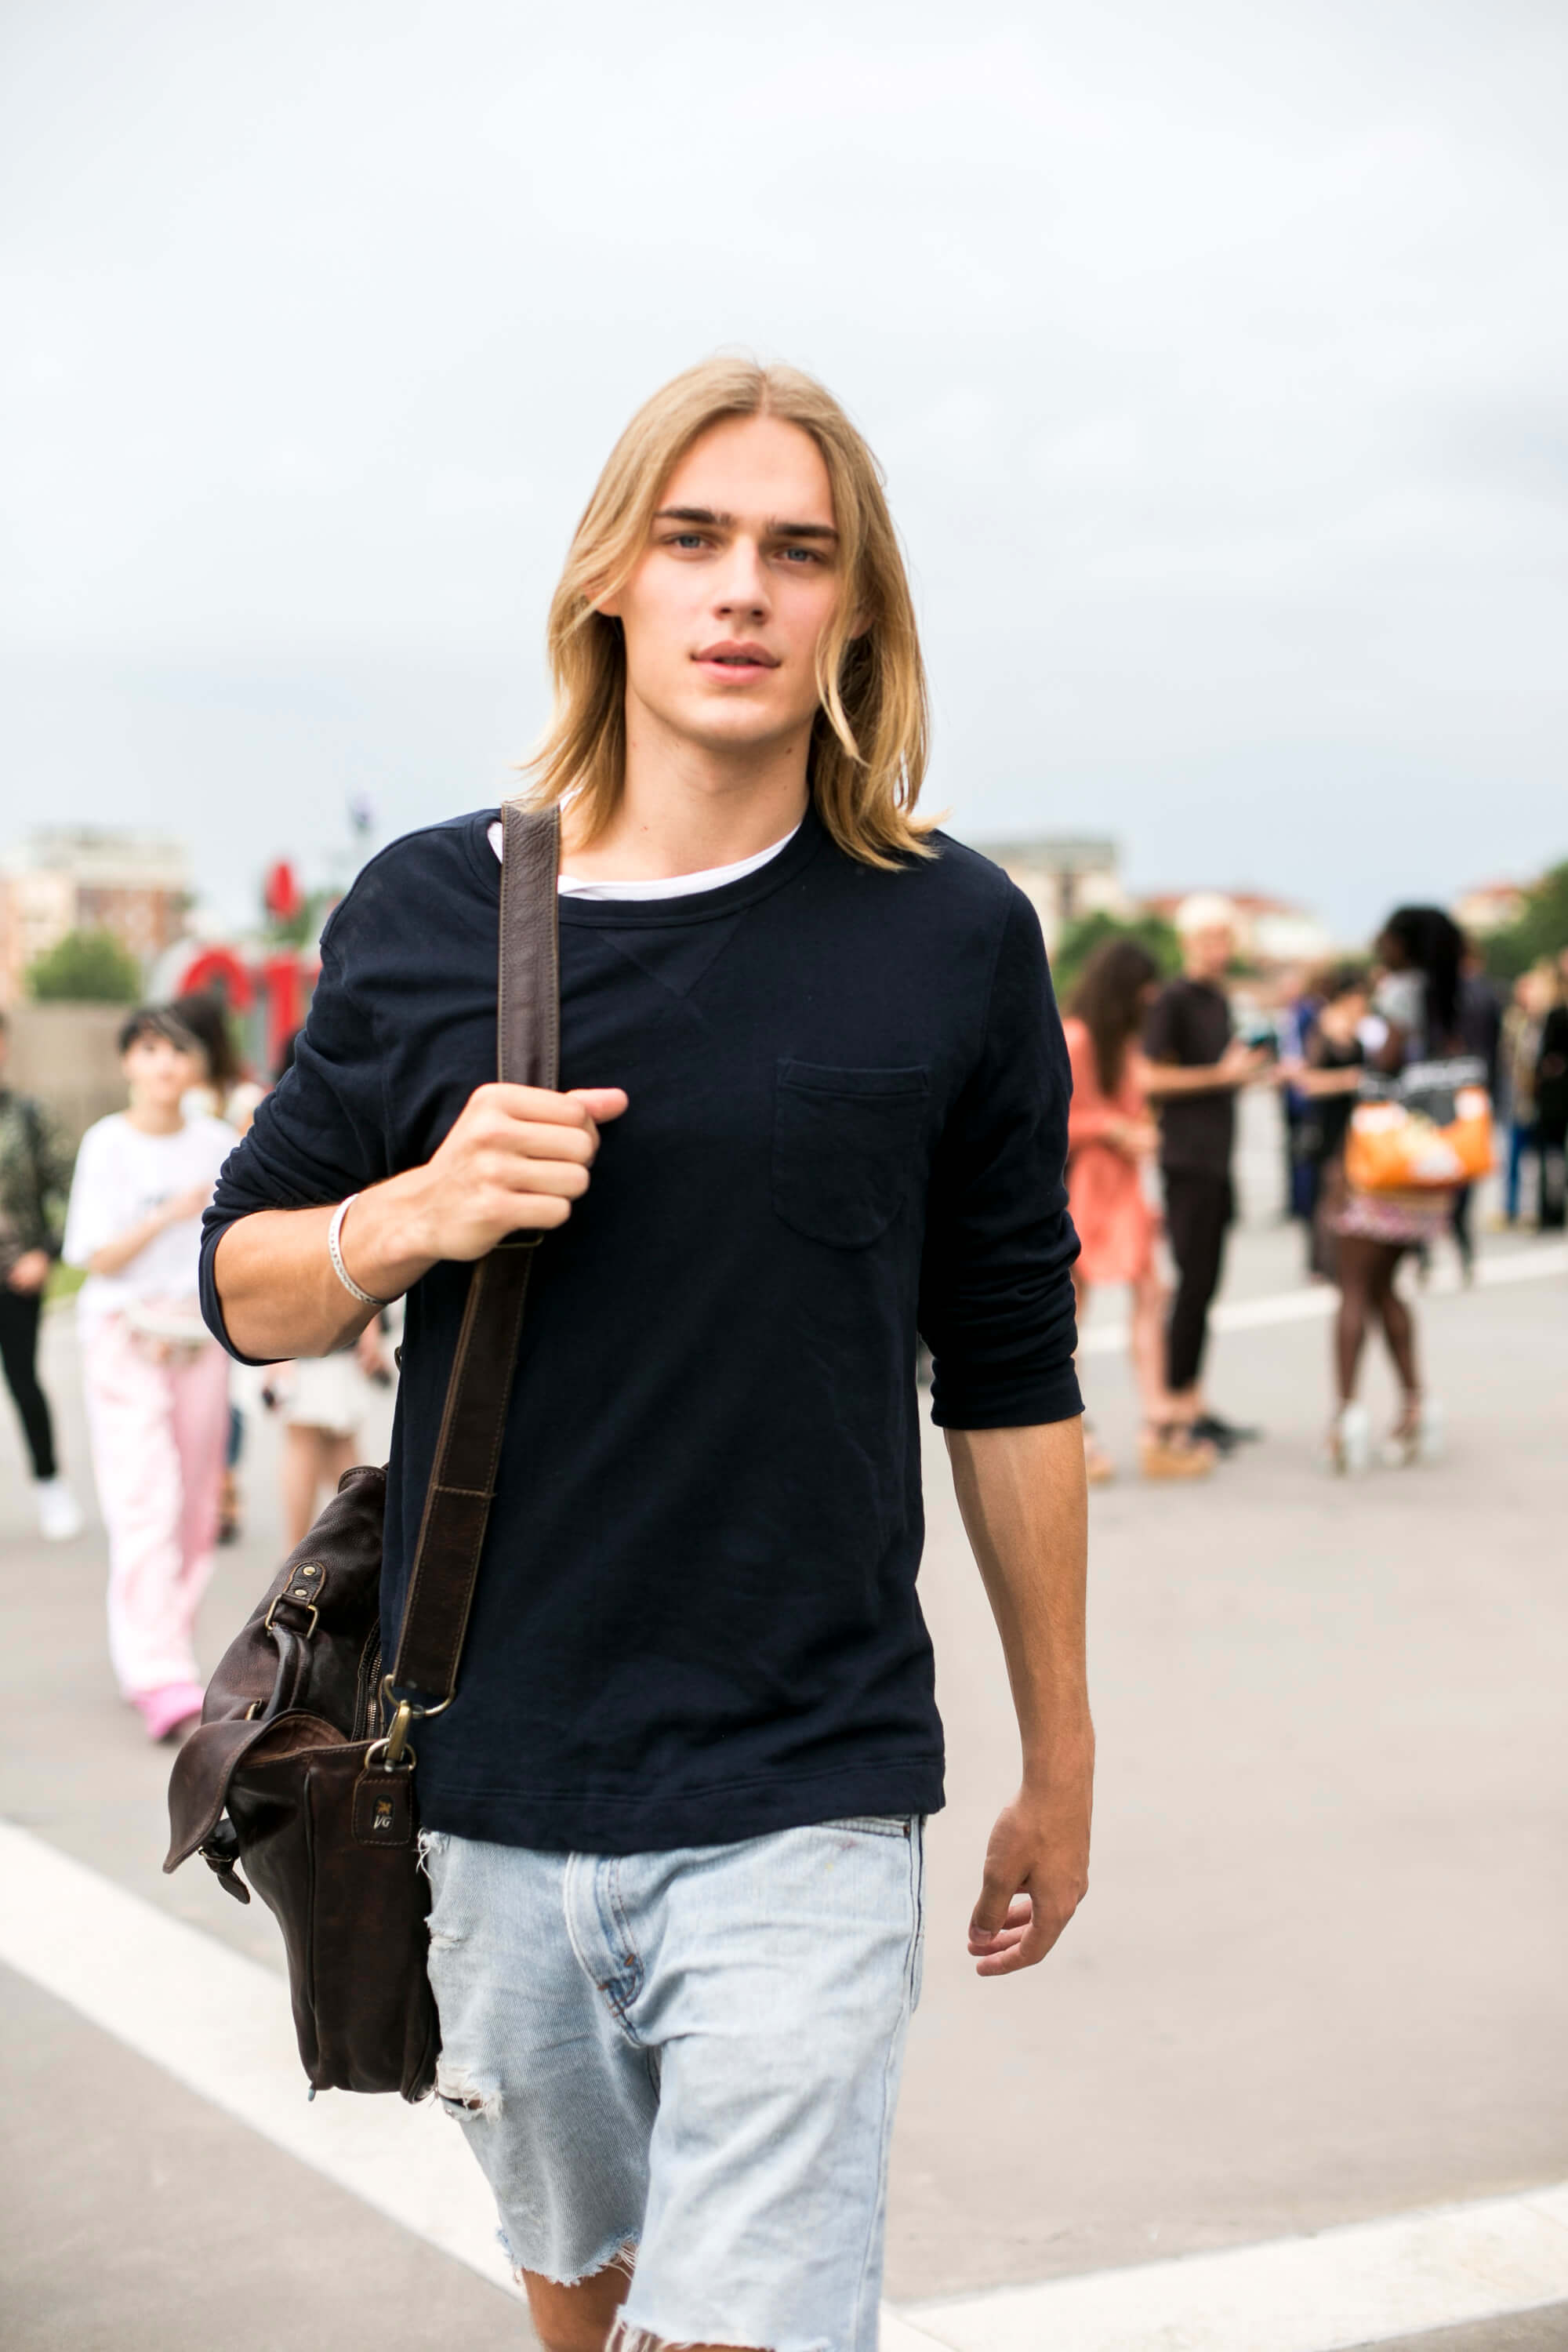 Long Hairstyles For Men 2016 The Looks To Try Now